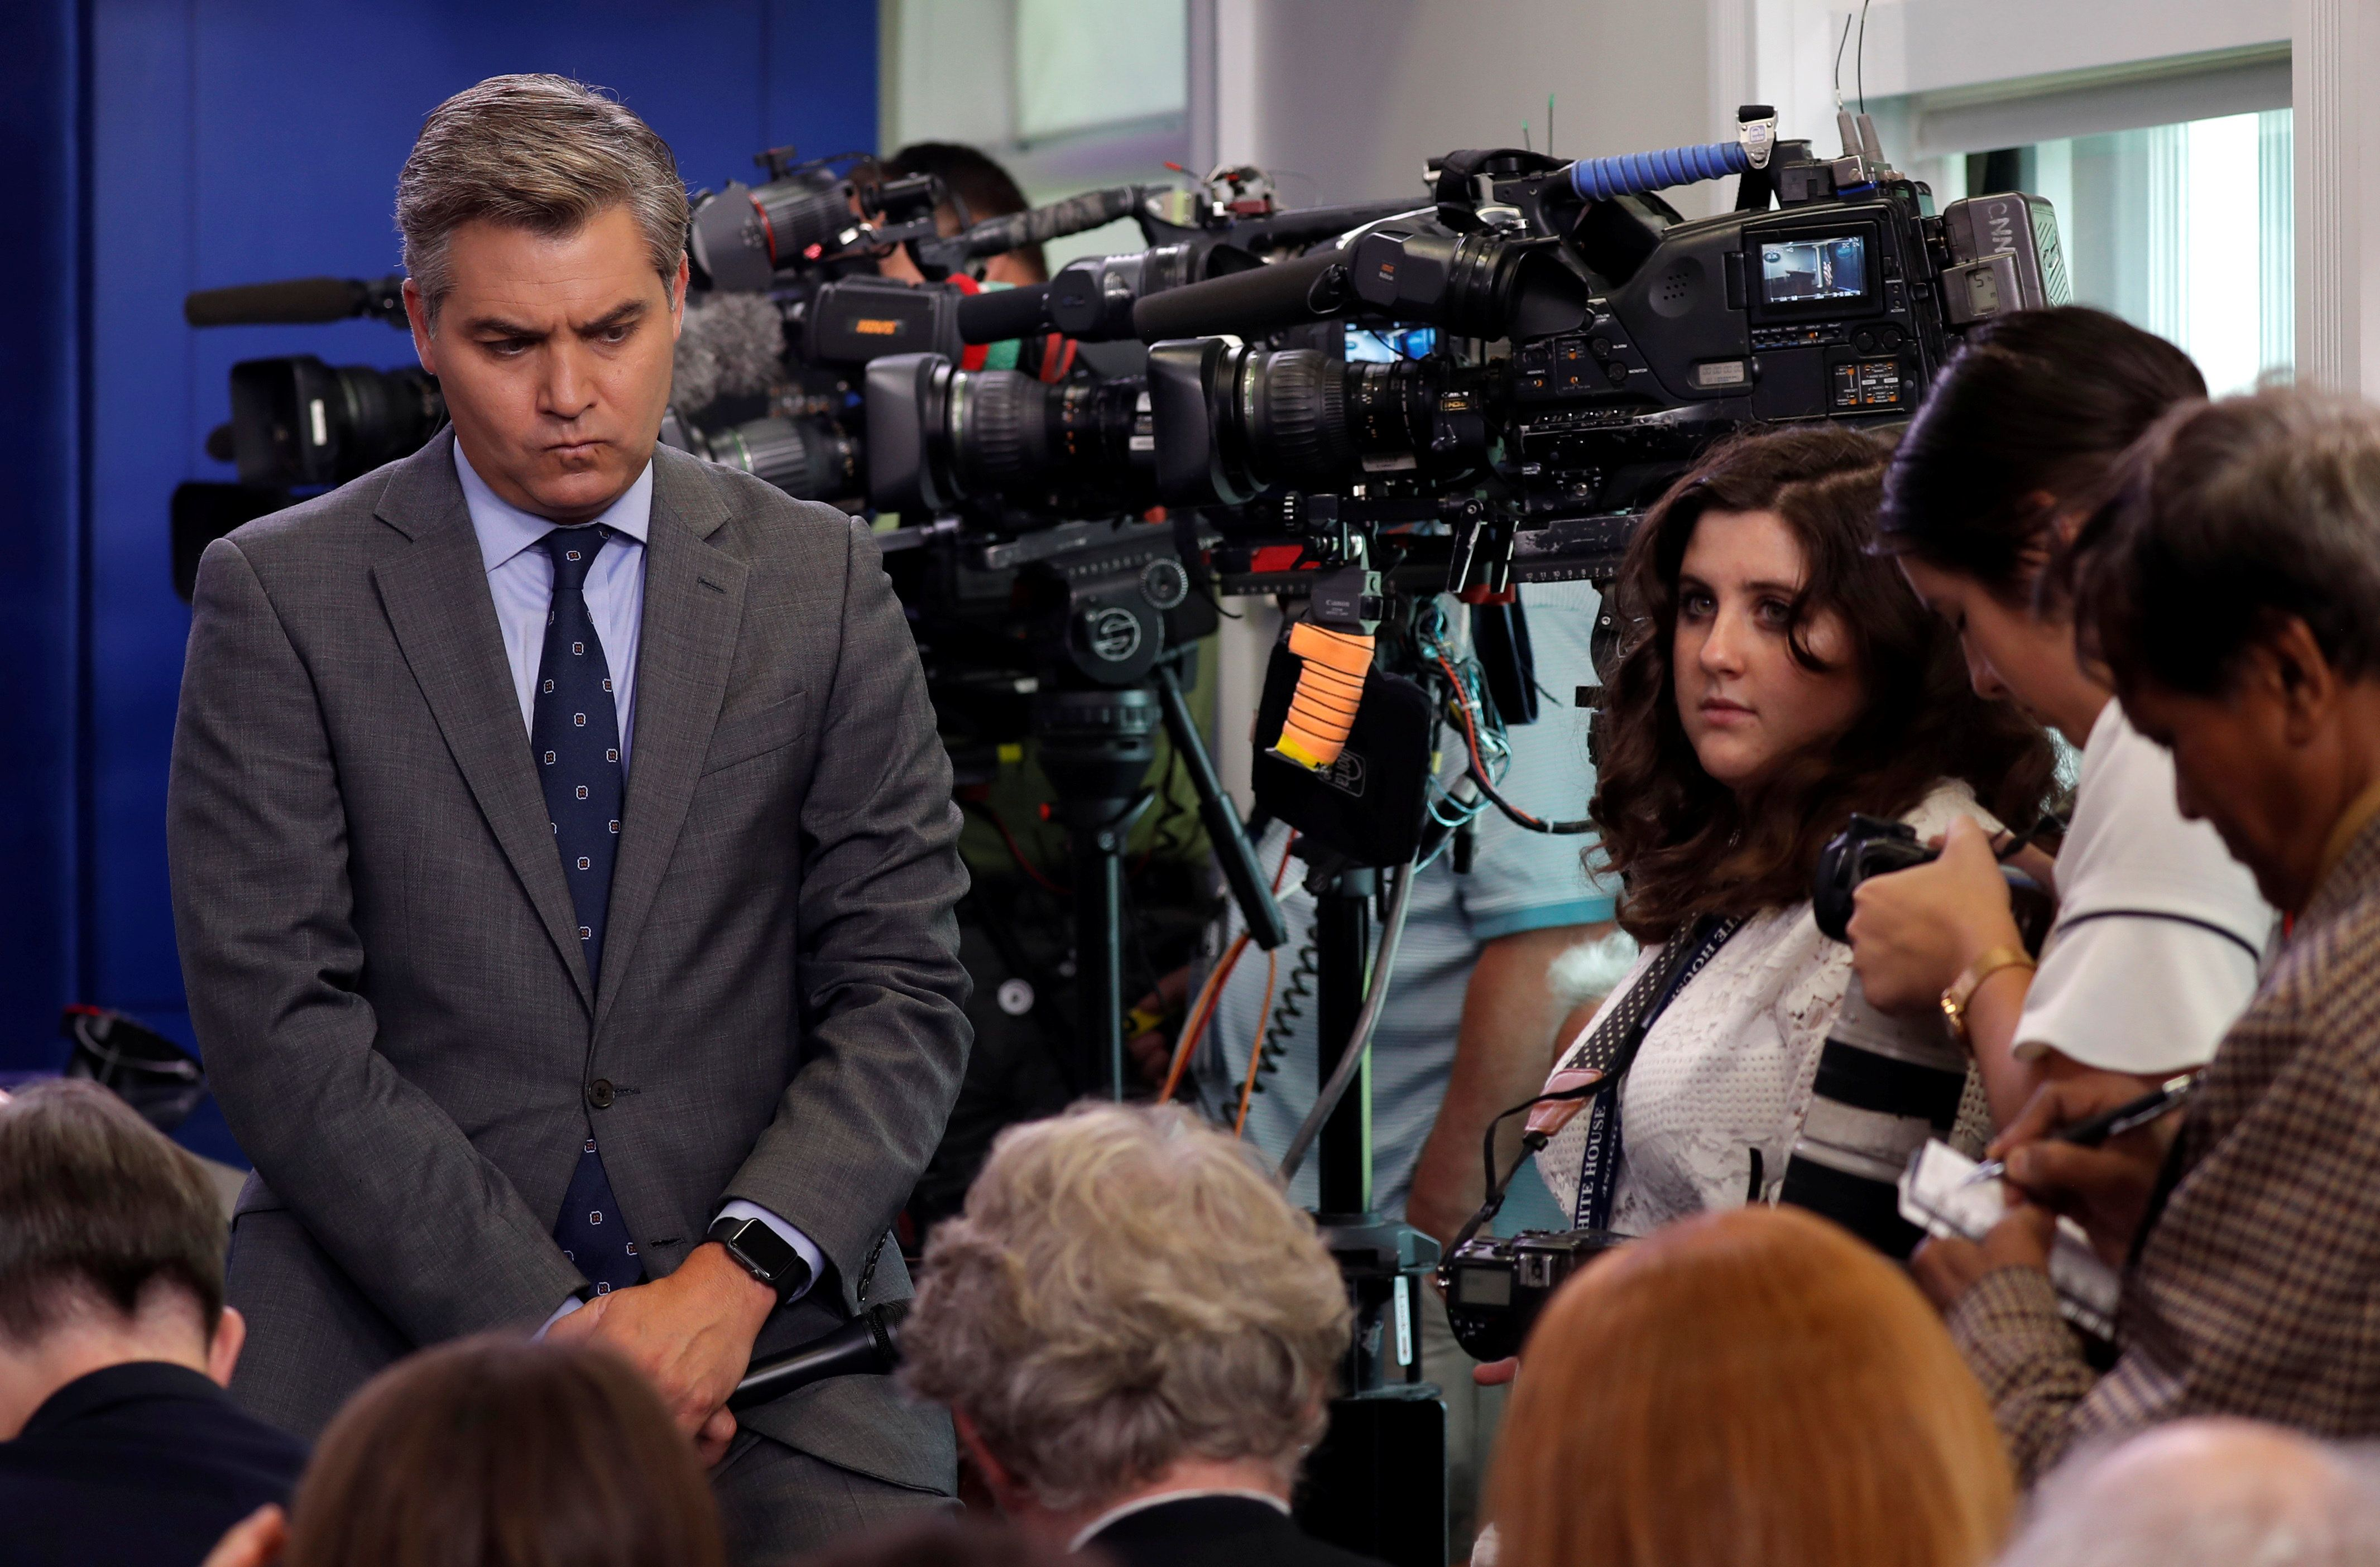 White House Issues New 'Rules' For Press Corps After Jim Acosta